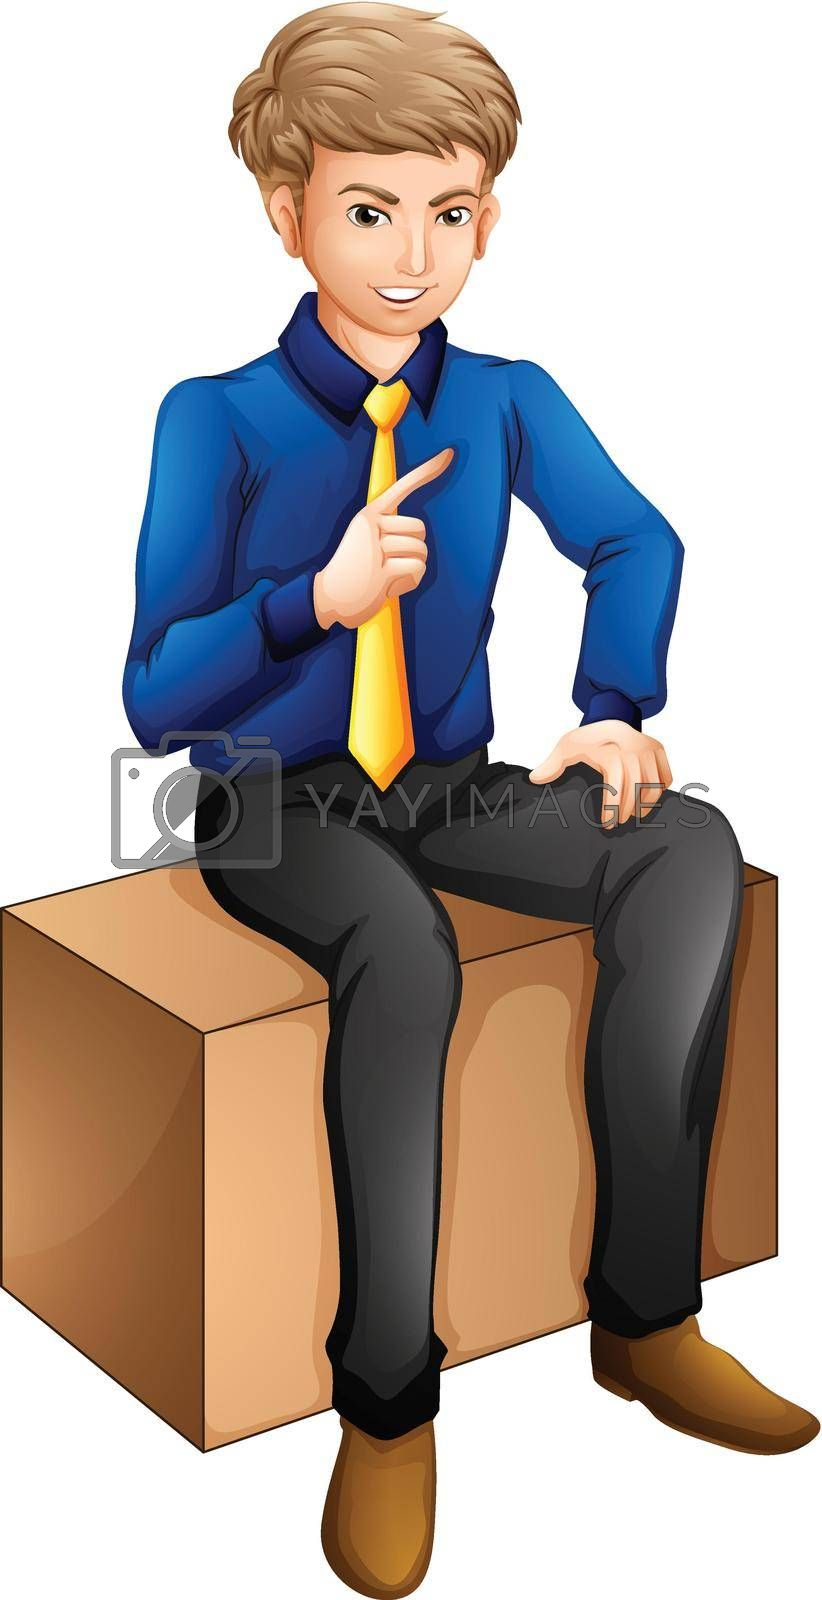 Royalty free image of A man sitting by iimages